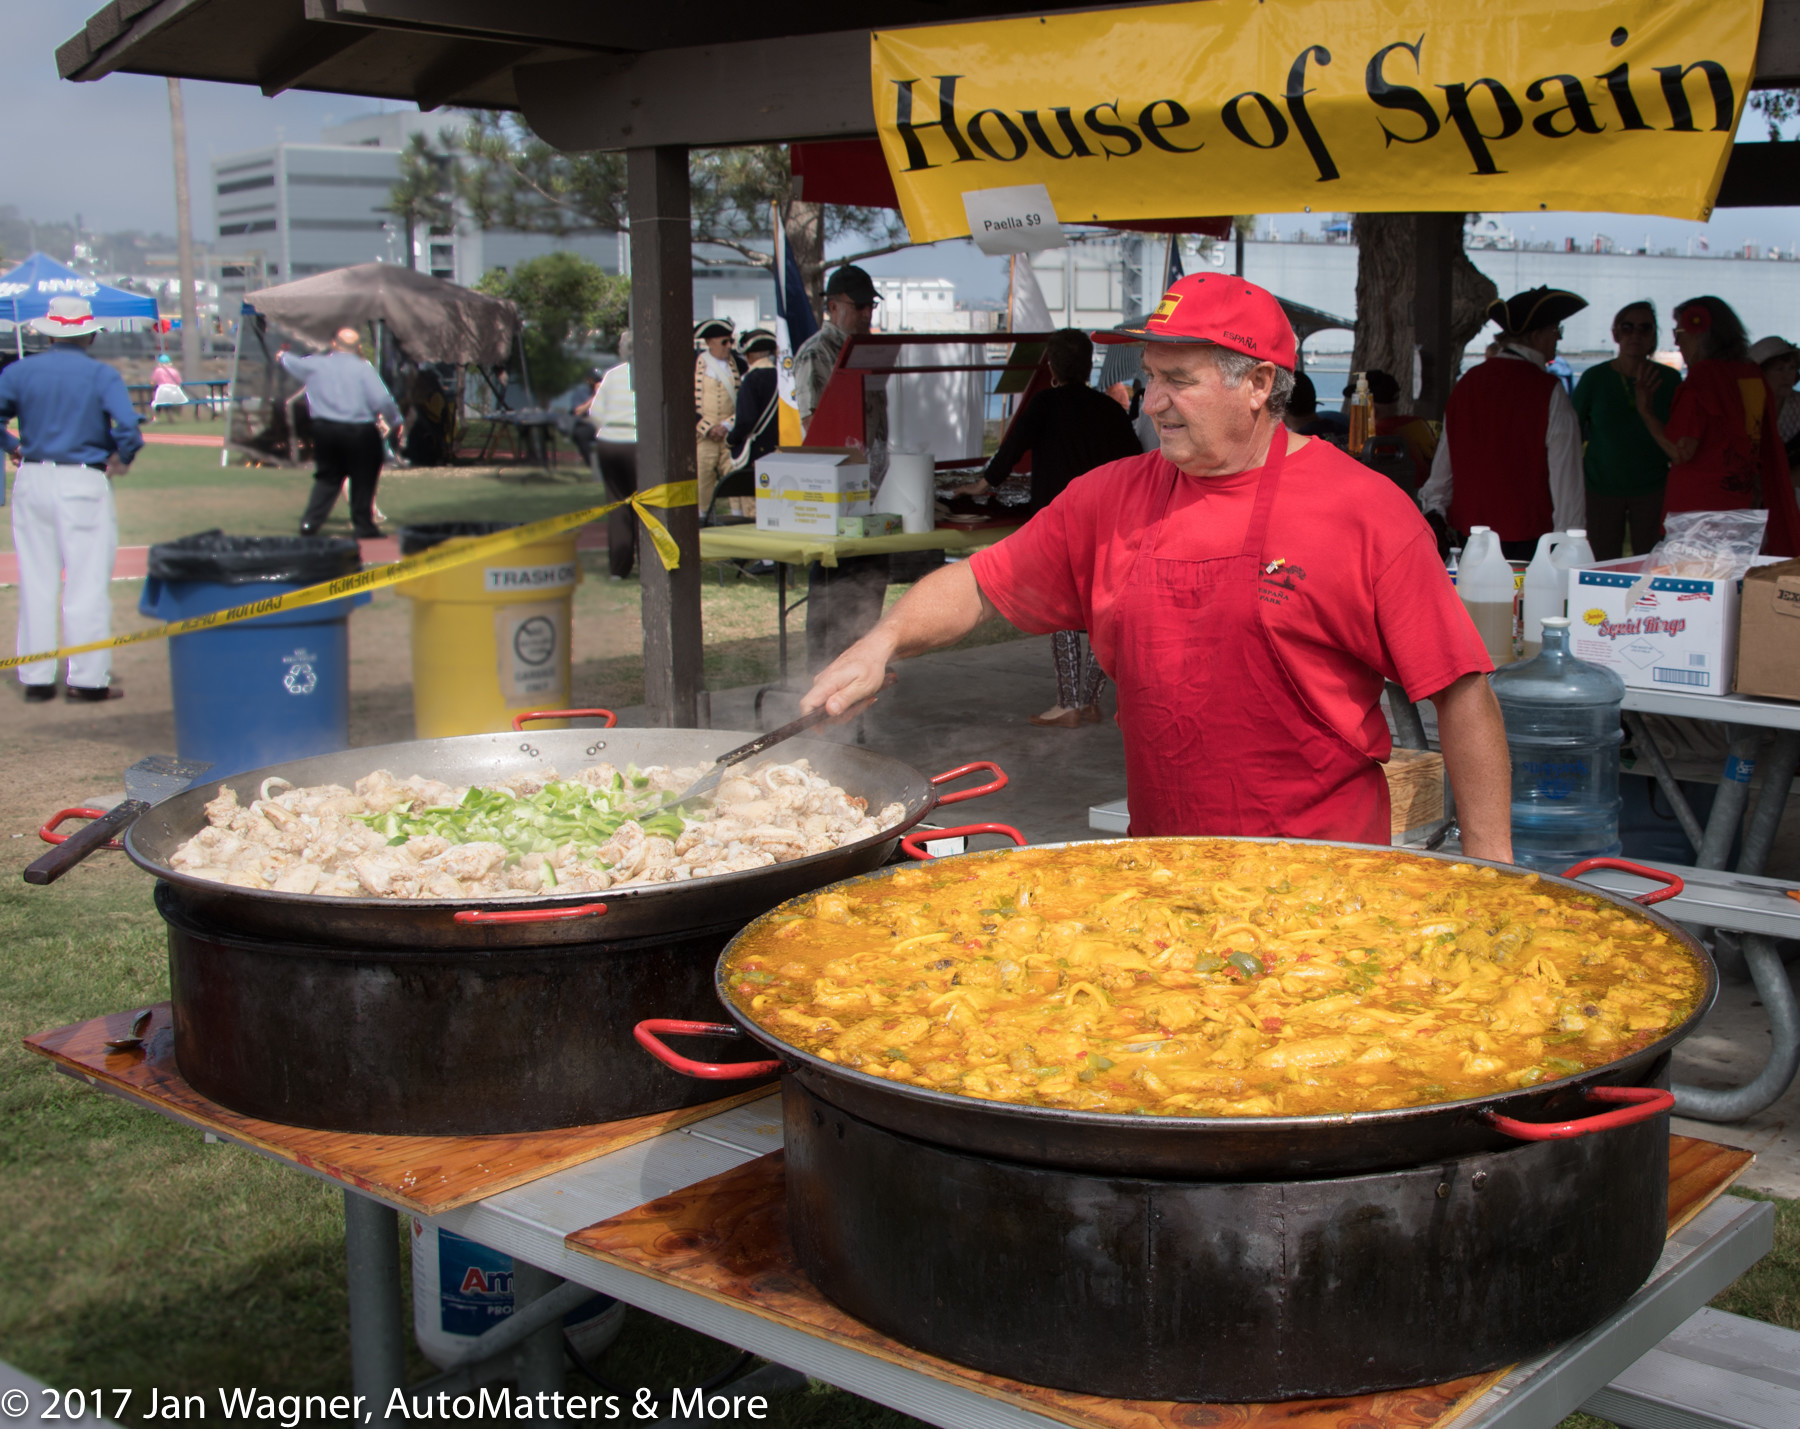 Paella being cooked by Jesús Benayas, President of the House of Spain